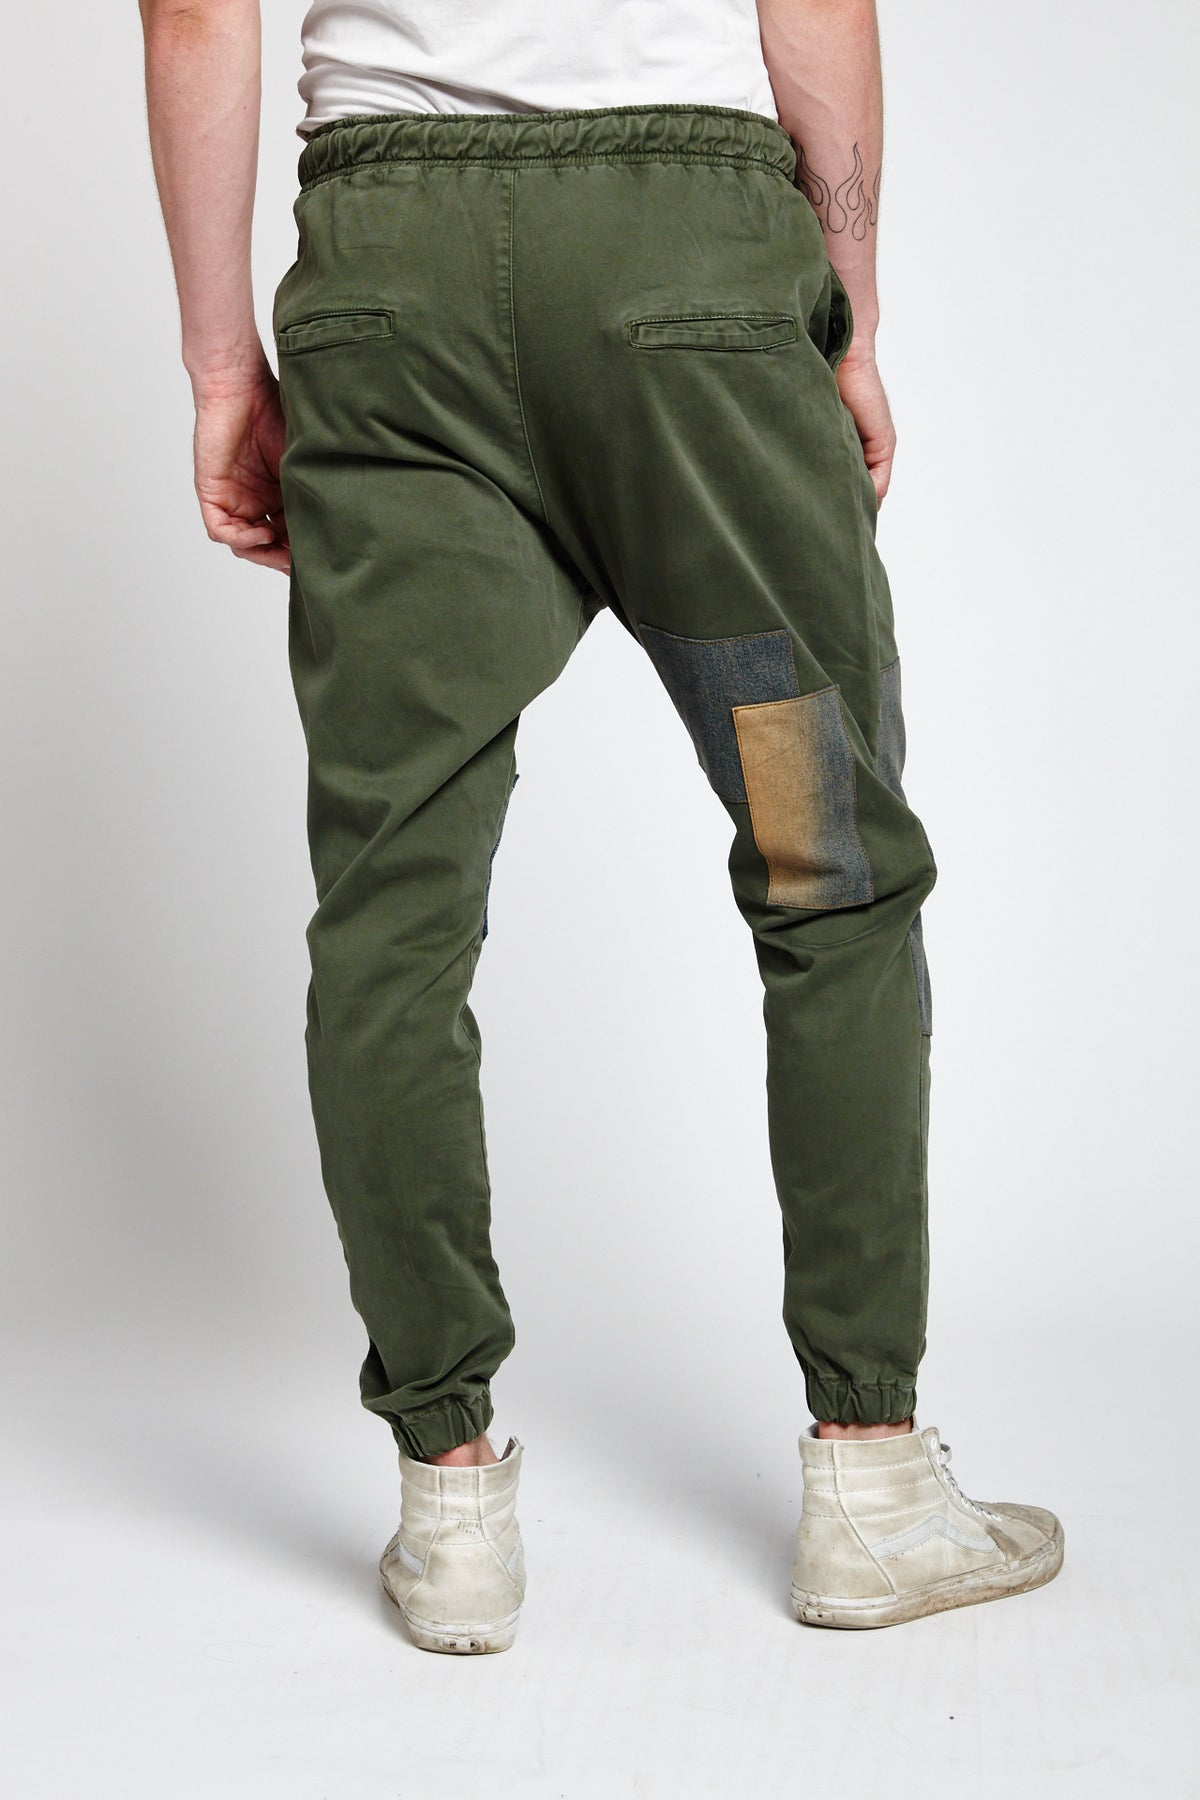 RETE GREEN COTTON SMALL JOGGER PANTS-BOTTOMS-Mundane Official-29-GREEN-Mundane Official